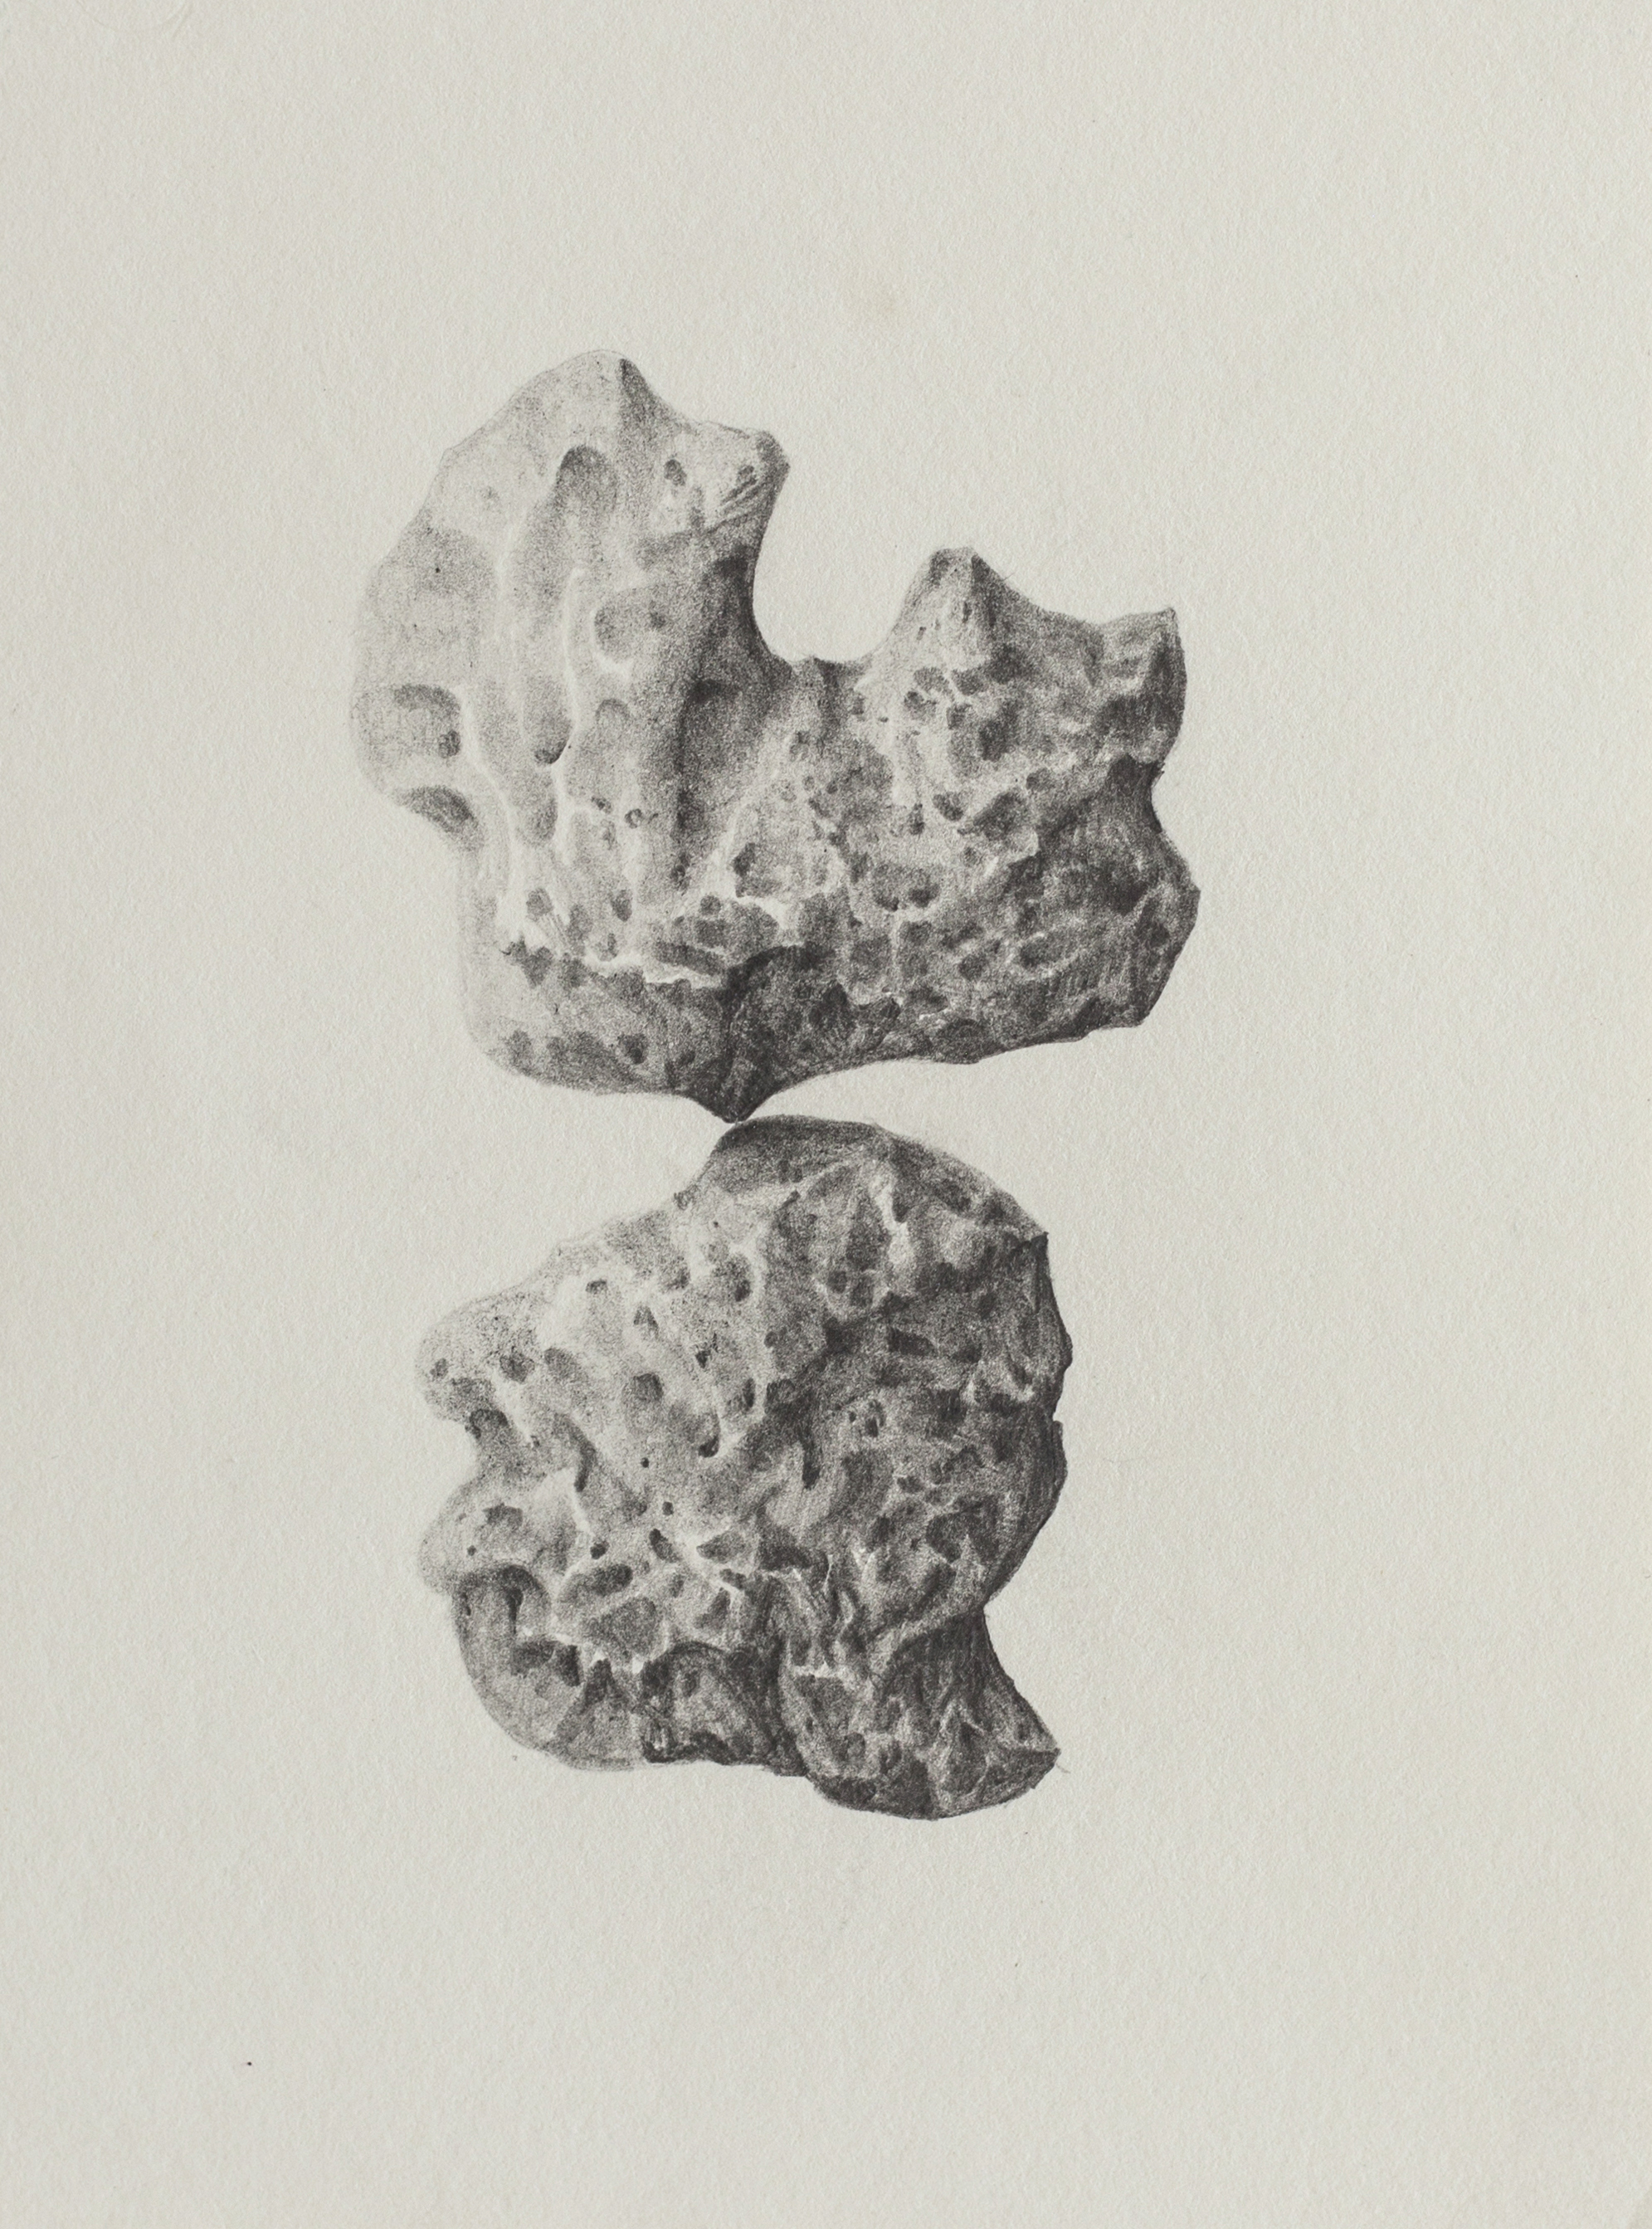 Untitled — Pencil on paper, 11 x 15 cm , 2016.